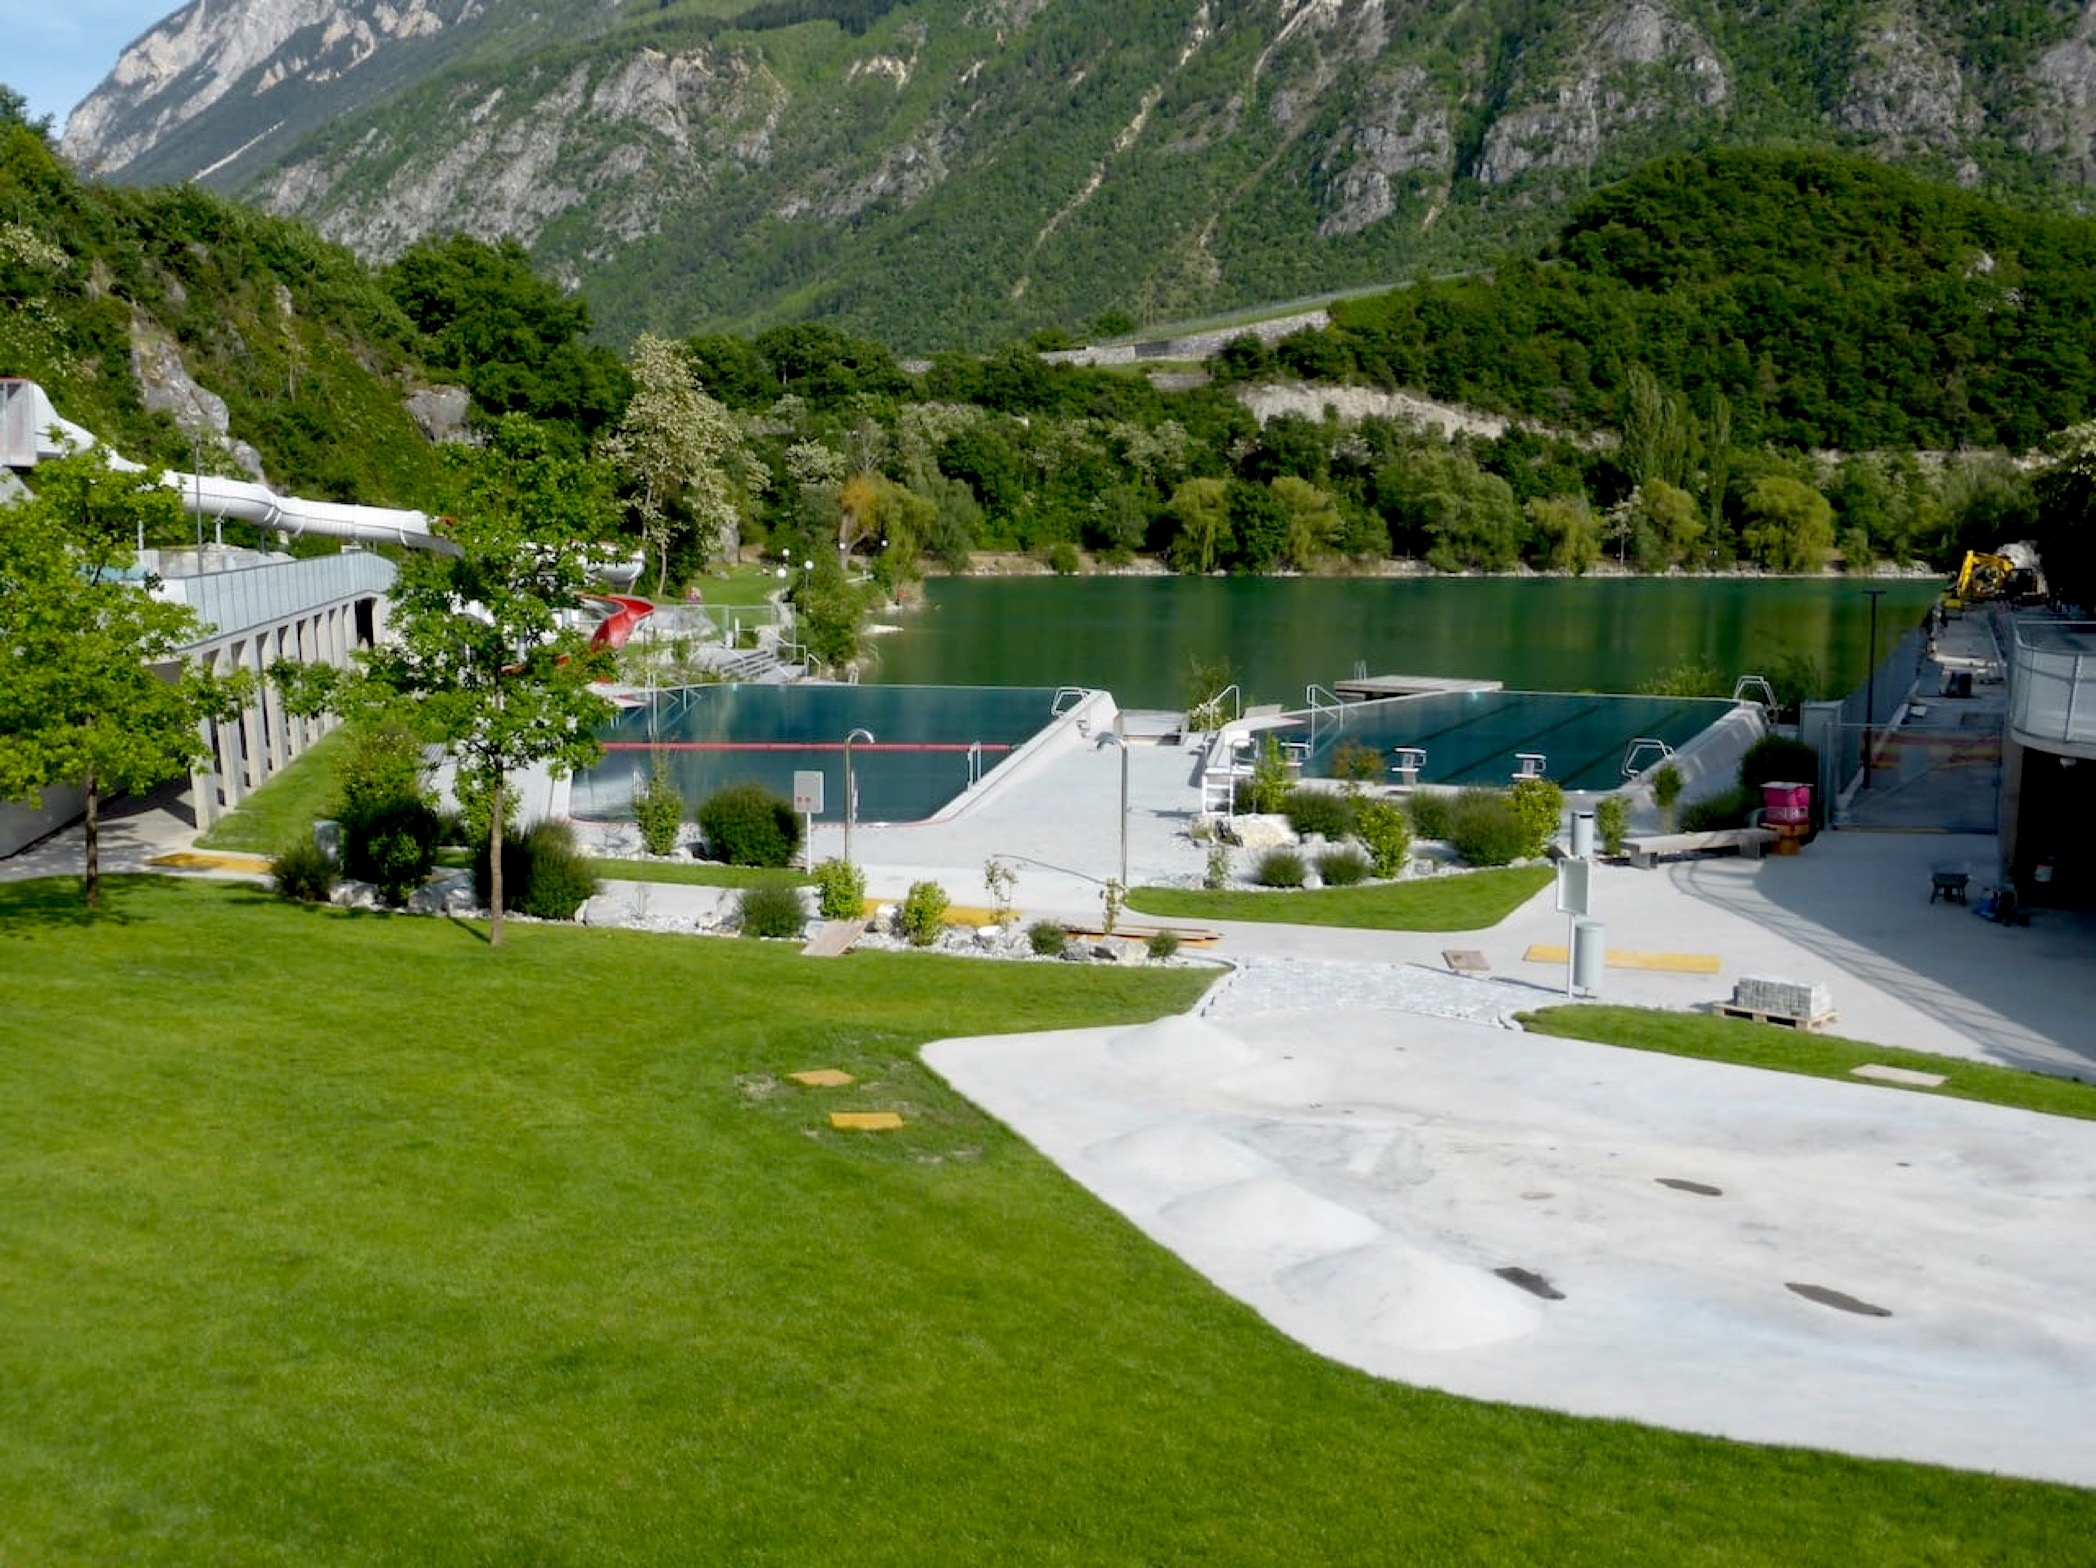 infinity pools & lake swimming at lac de geronde sierre